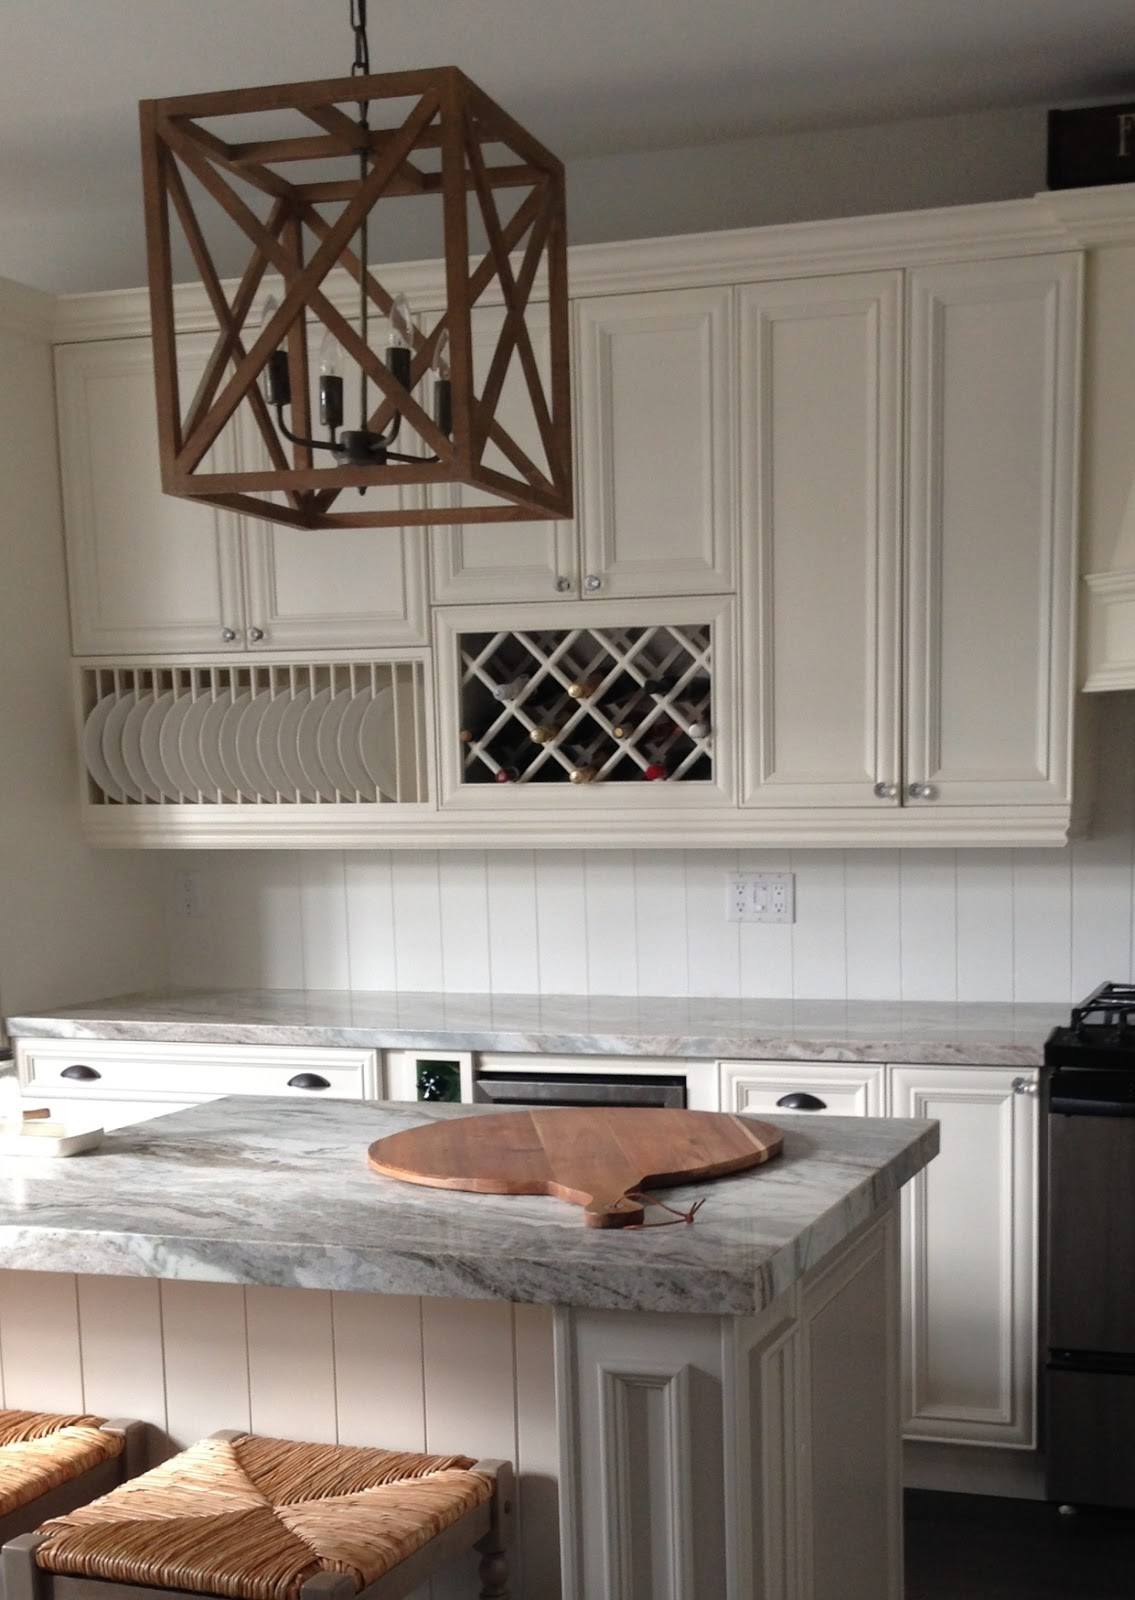 2perfection Decor Lighting For 9ft Kitchen Island